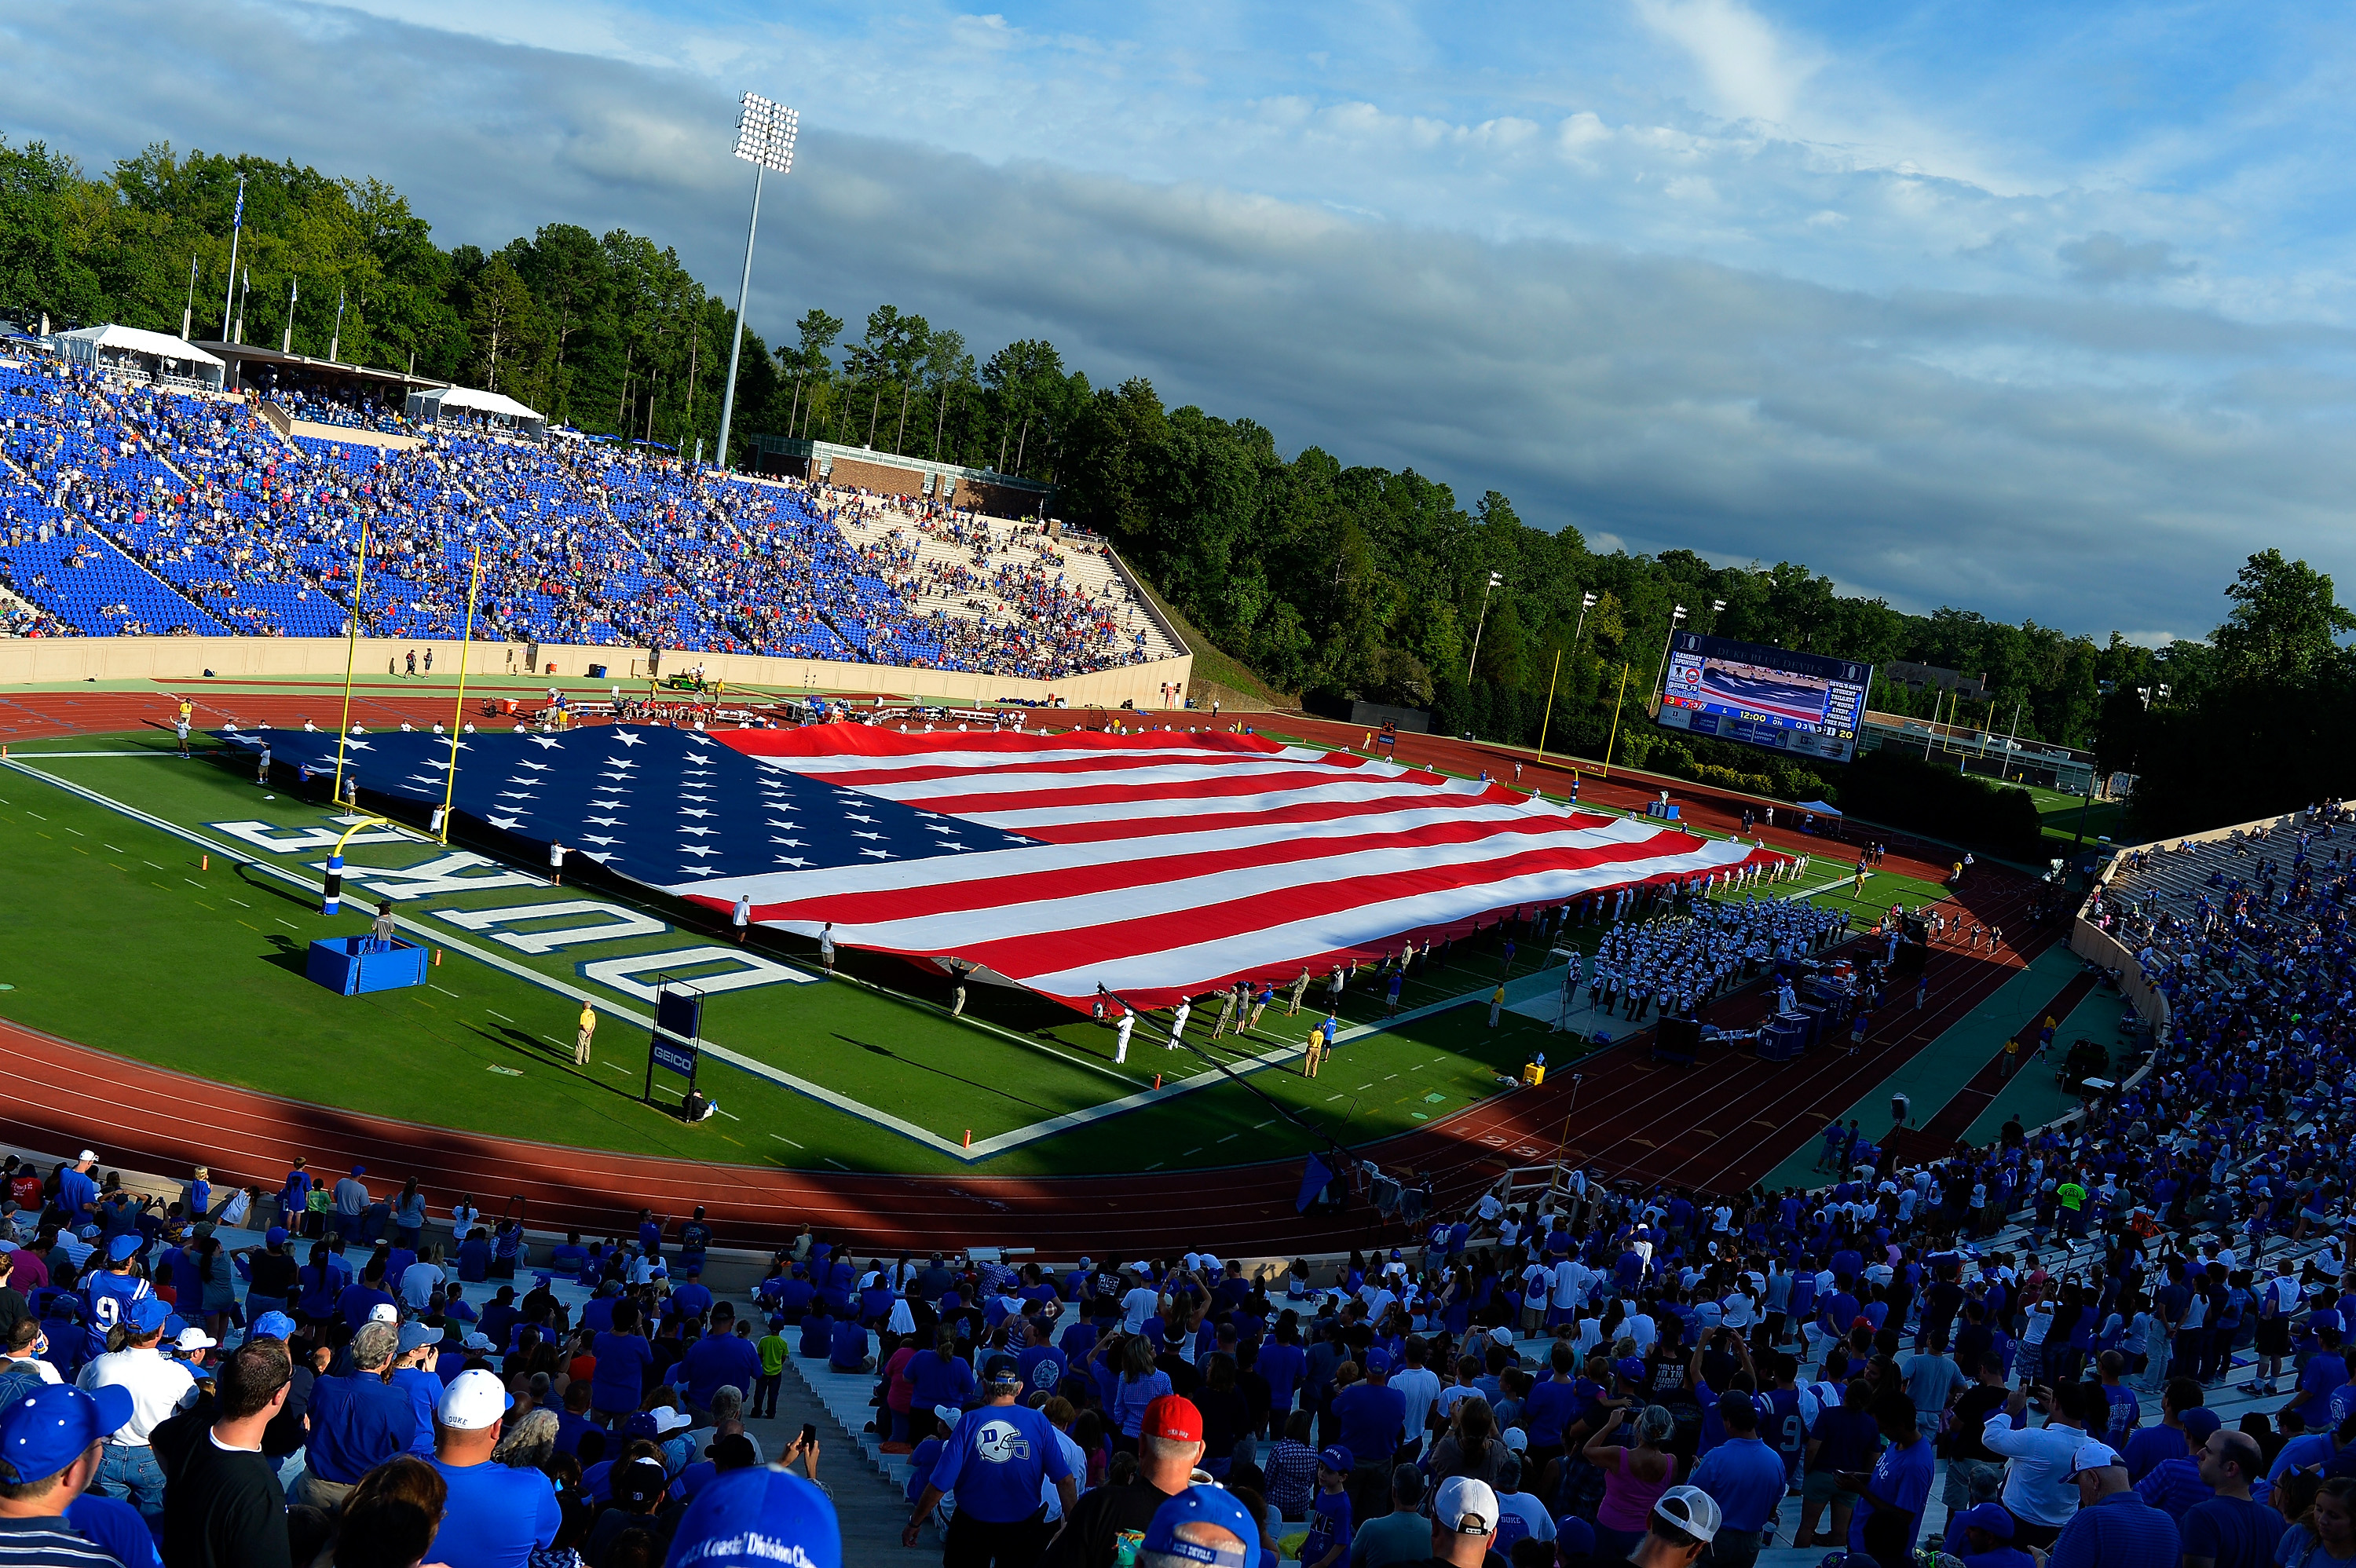 A stadium-sized American flag is displayed for Military Appreciation Day during halftime of the game between the Kansas Jayhawks and the Duke Blue Devils at Wallace Wade Stadium on September 13, 2014 in Durham, North Carolina.